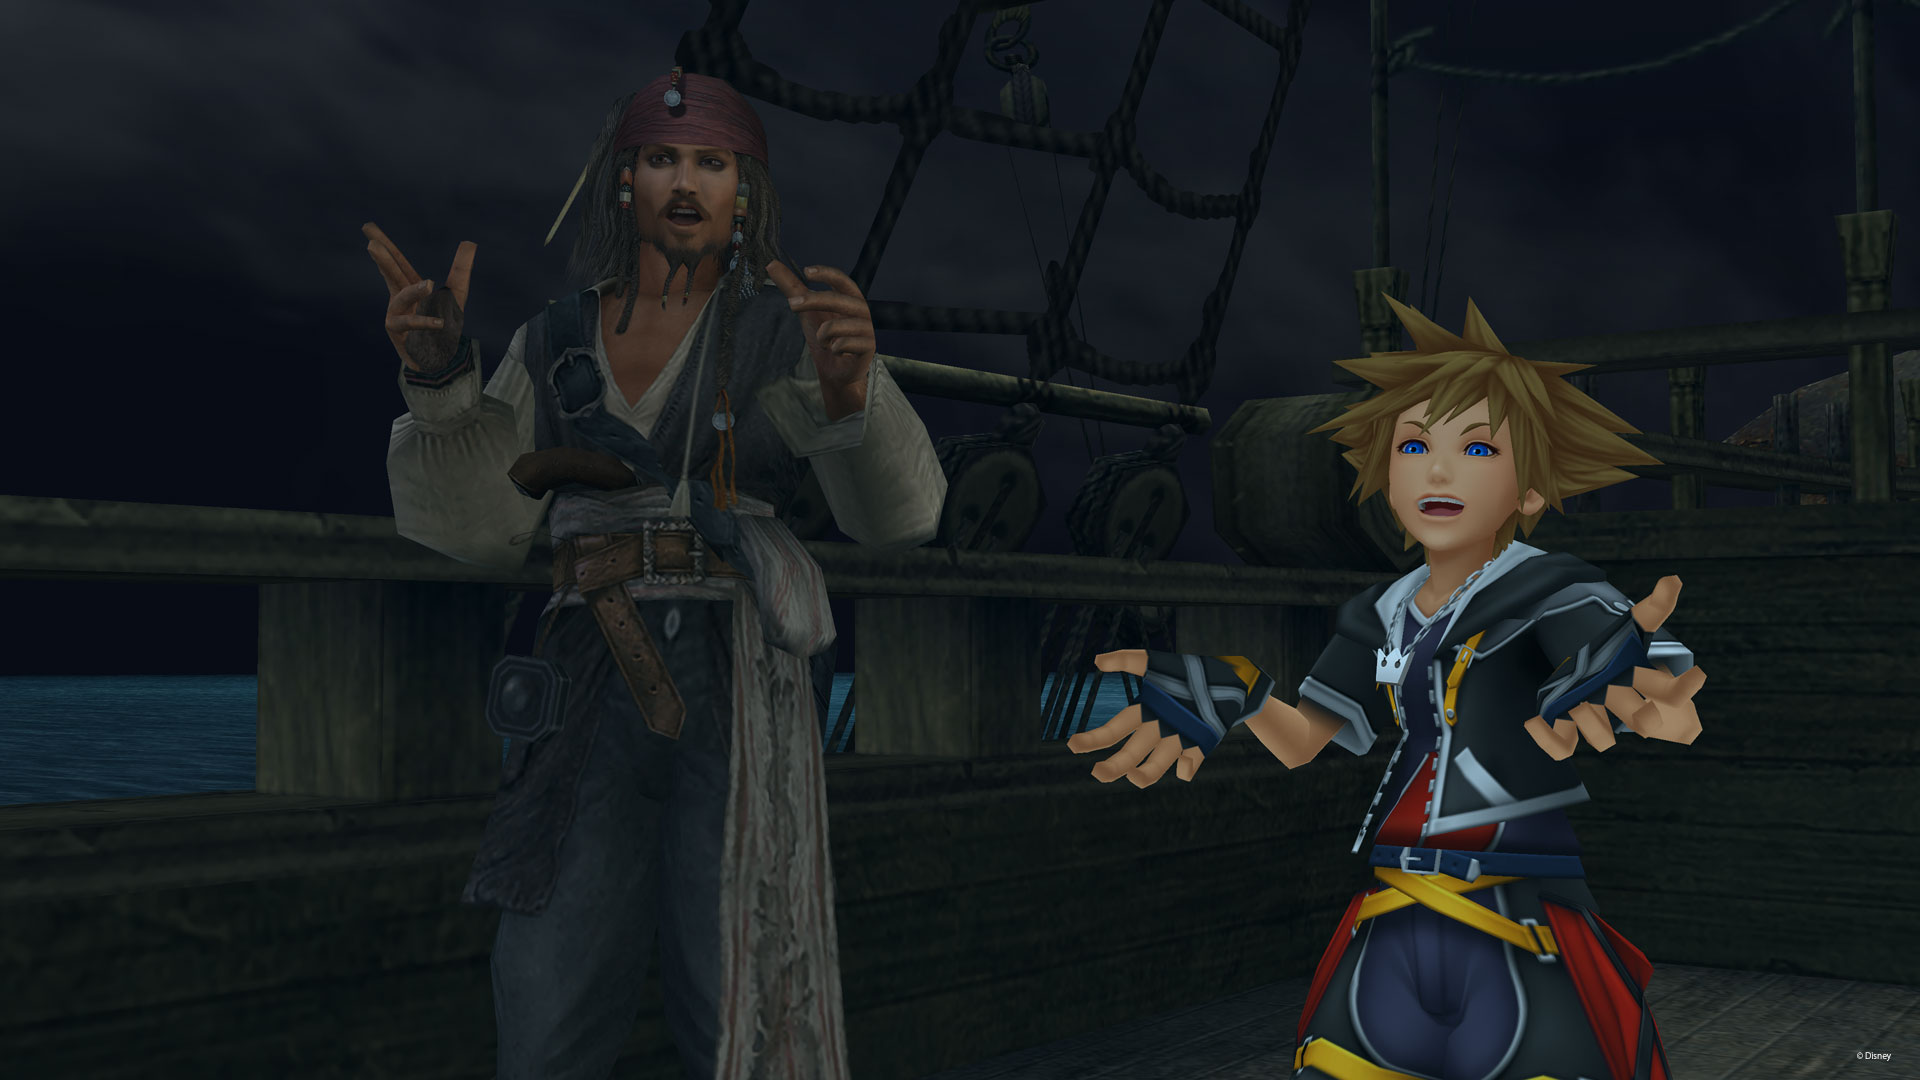 Sora con Jack Sparrow in Kingdom Hearts II